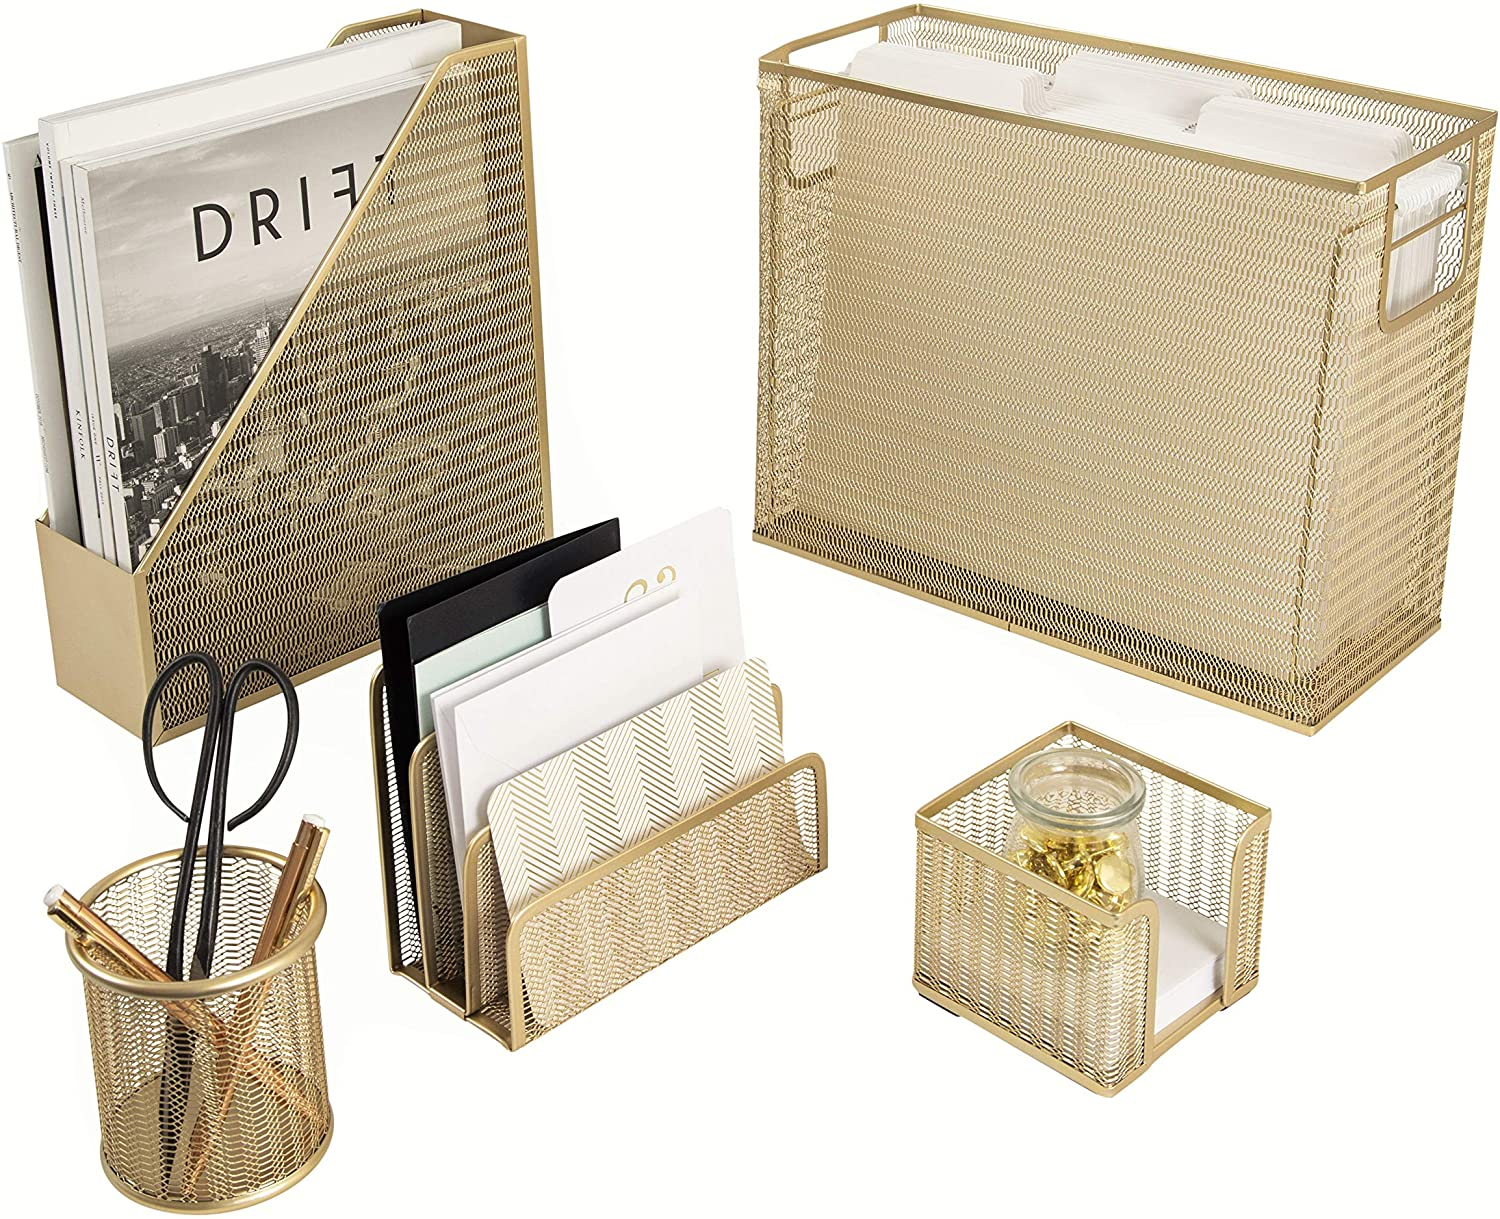 Blu Monaco 5 Piece Cute Office Supplies Gold Desk Organizer Set - with Desktop Hanging File Organizer, Magazine Holder, Pen Cup, Sticky Note Holder, Letter sorter - Gold Desk Accessories